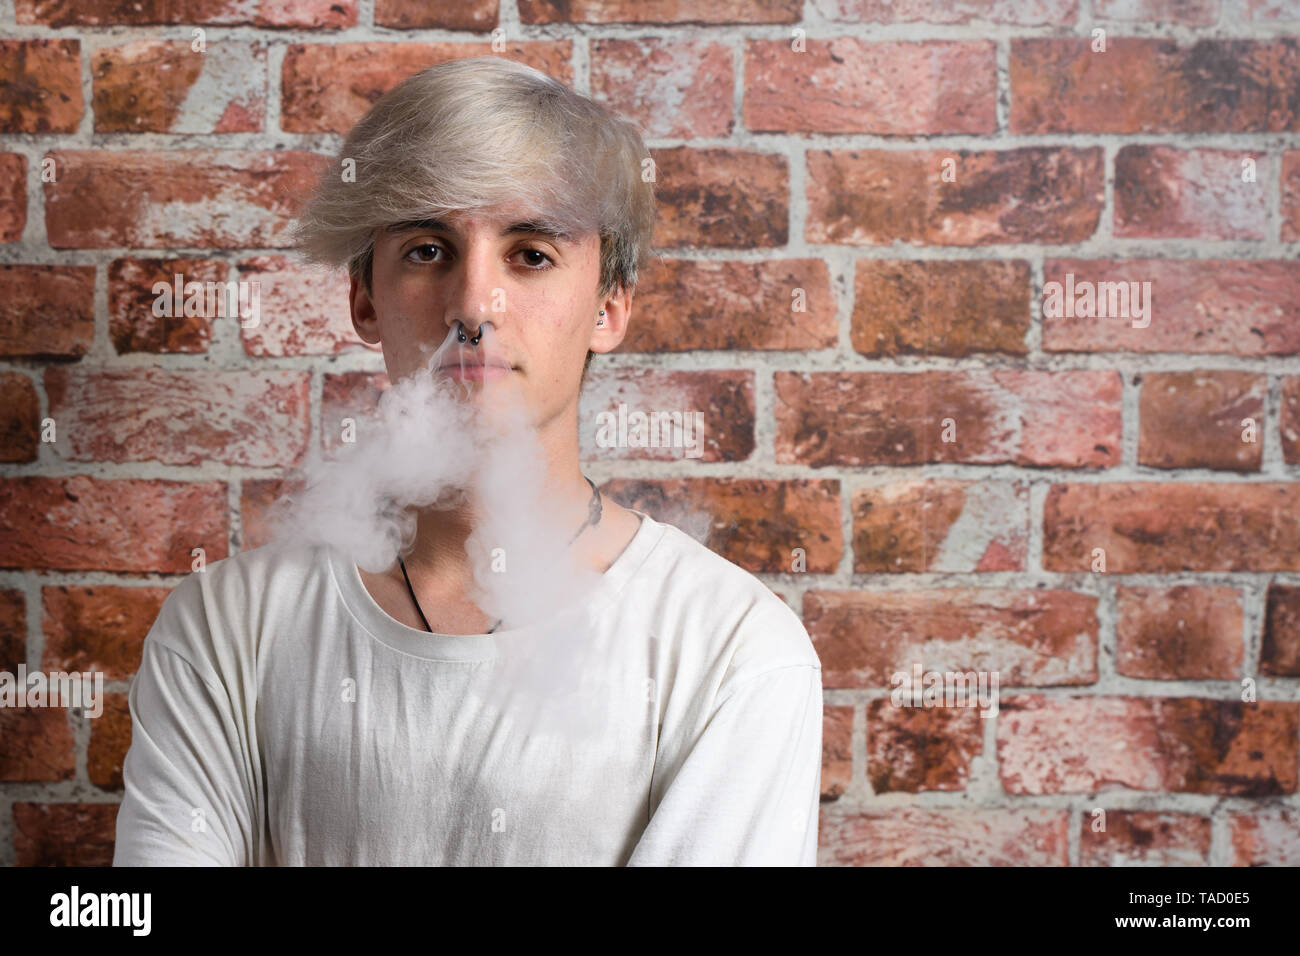 Vaper Smoke outdoor electronic cigarette near the brick wall. Young man smoking big cloud of steam - Stock Image